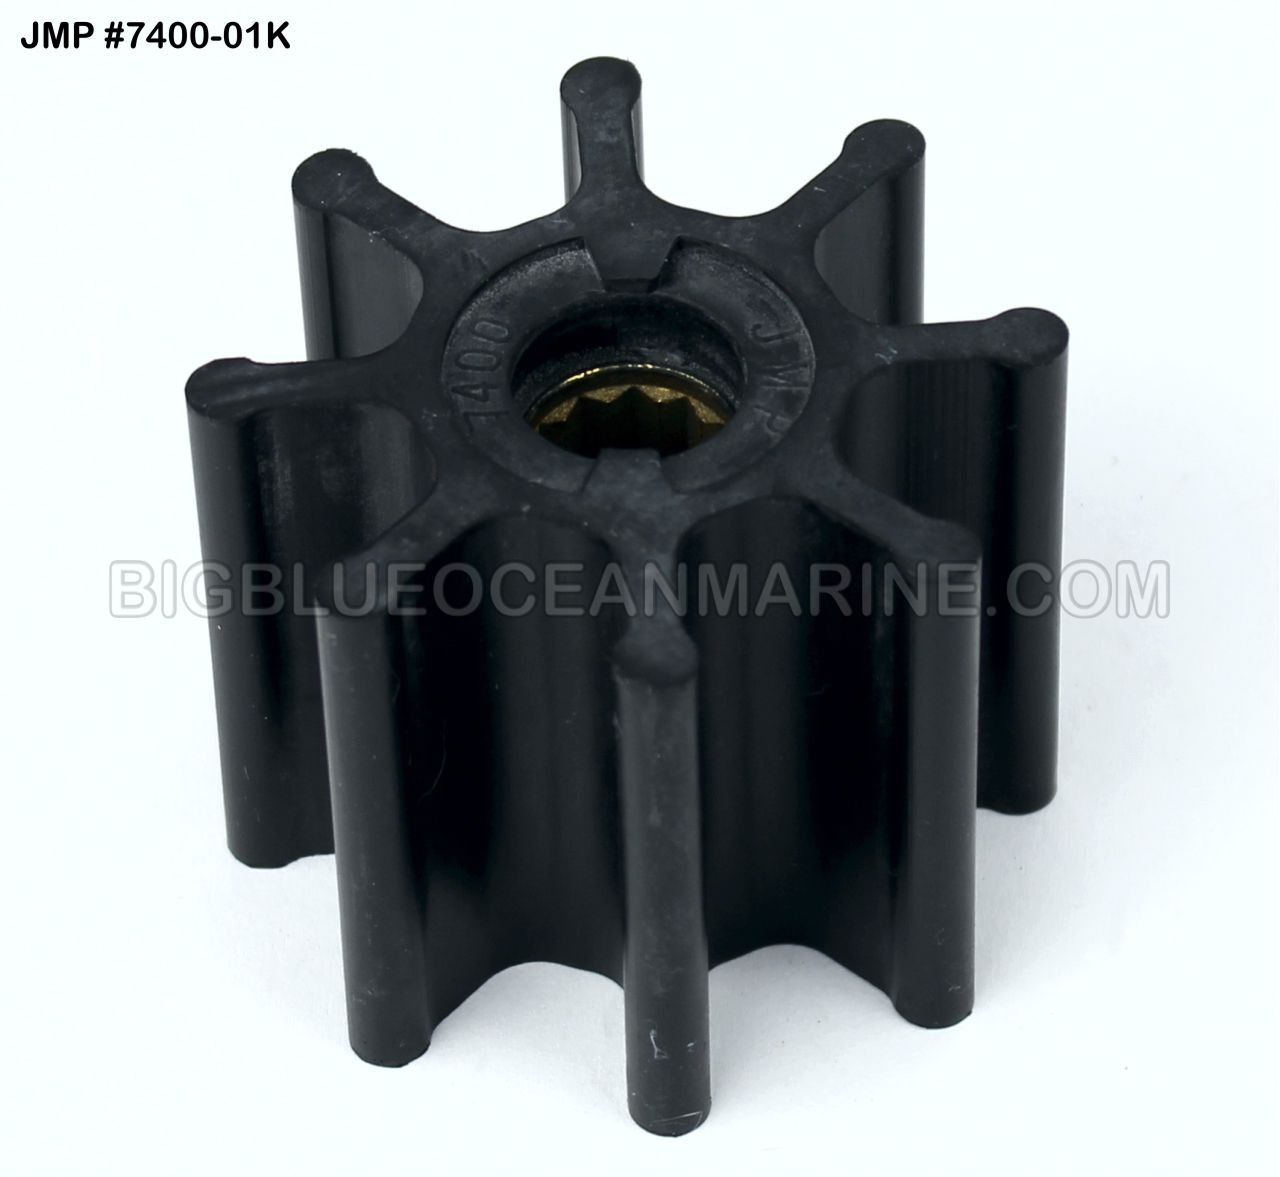 Sea Water Pump Impeller Kit for Sherwood Outboard Replacement 18200K /& 18200